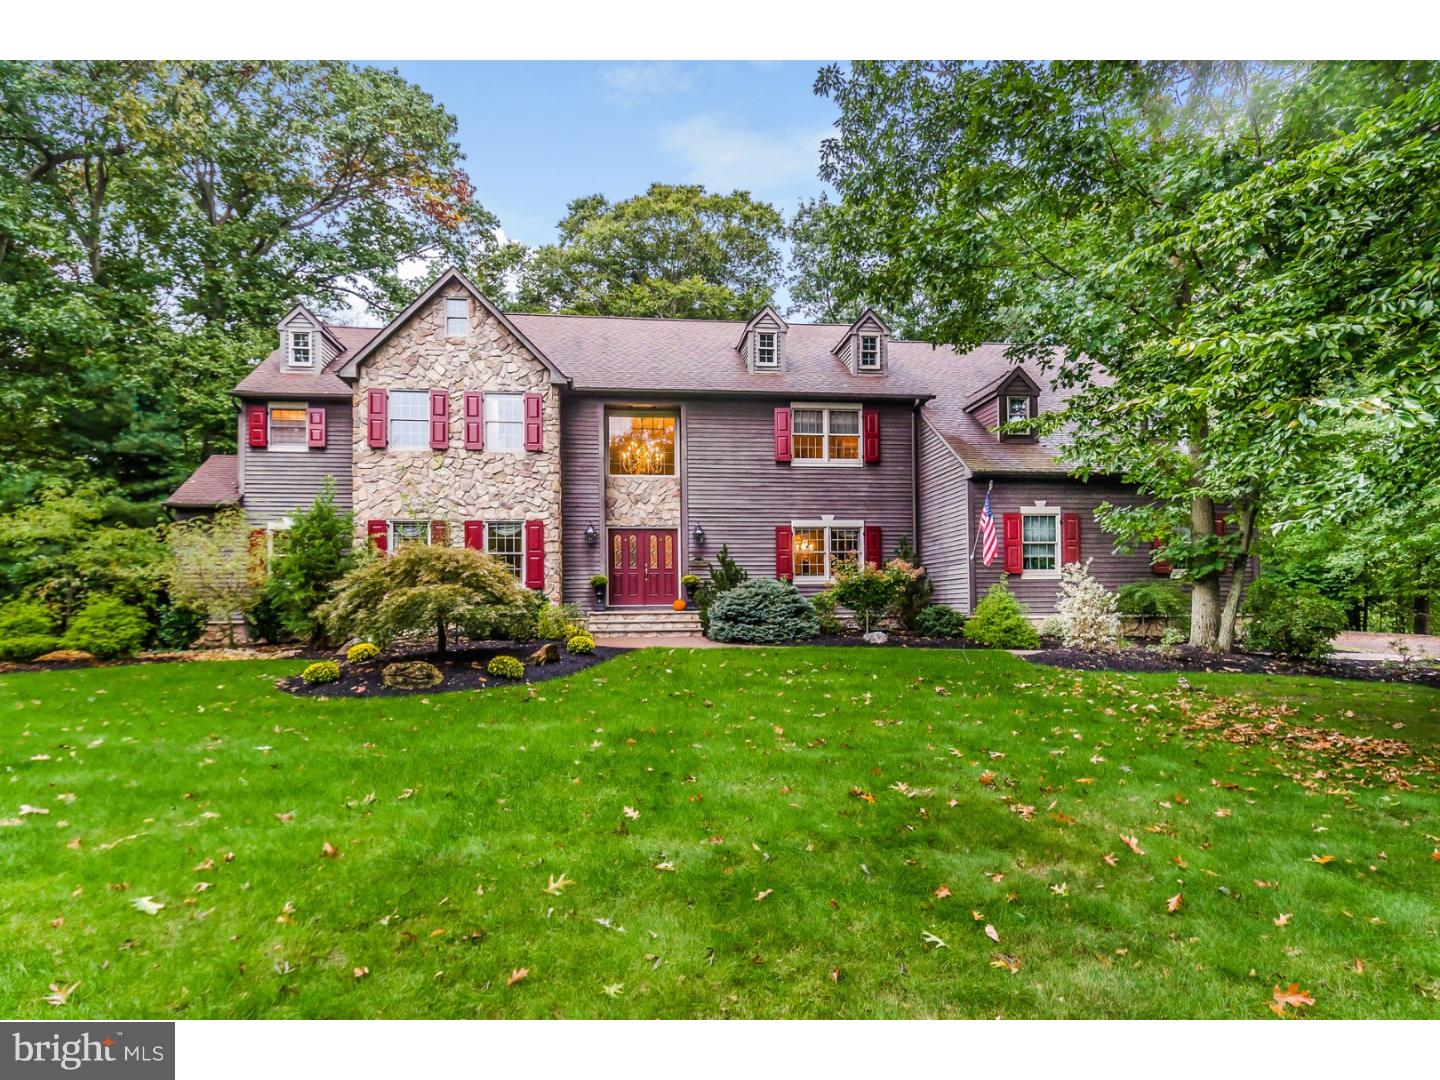 Single Family Home for Sale at 3 LENAPE Court Cranbury, New Jersey 08512 United StatesMunicipality: Cranbury Township